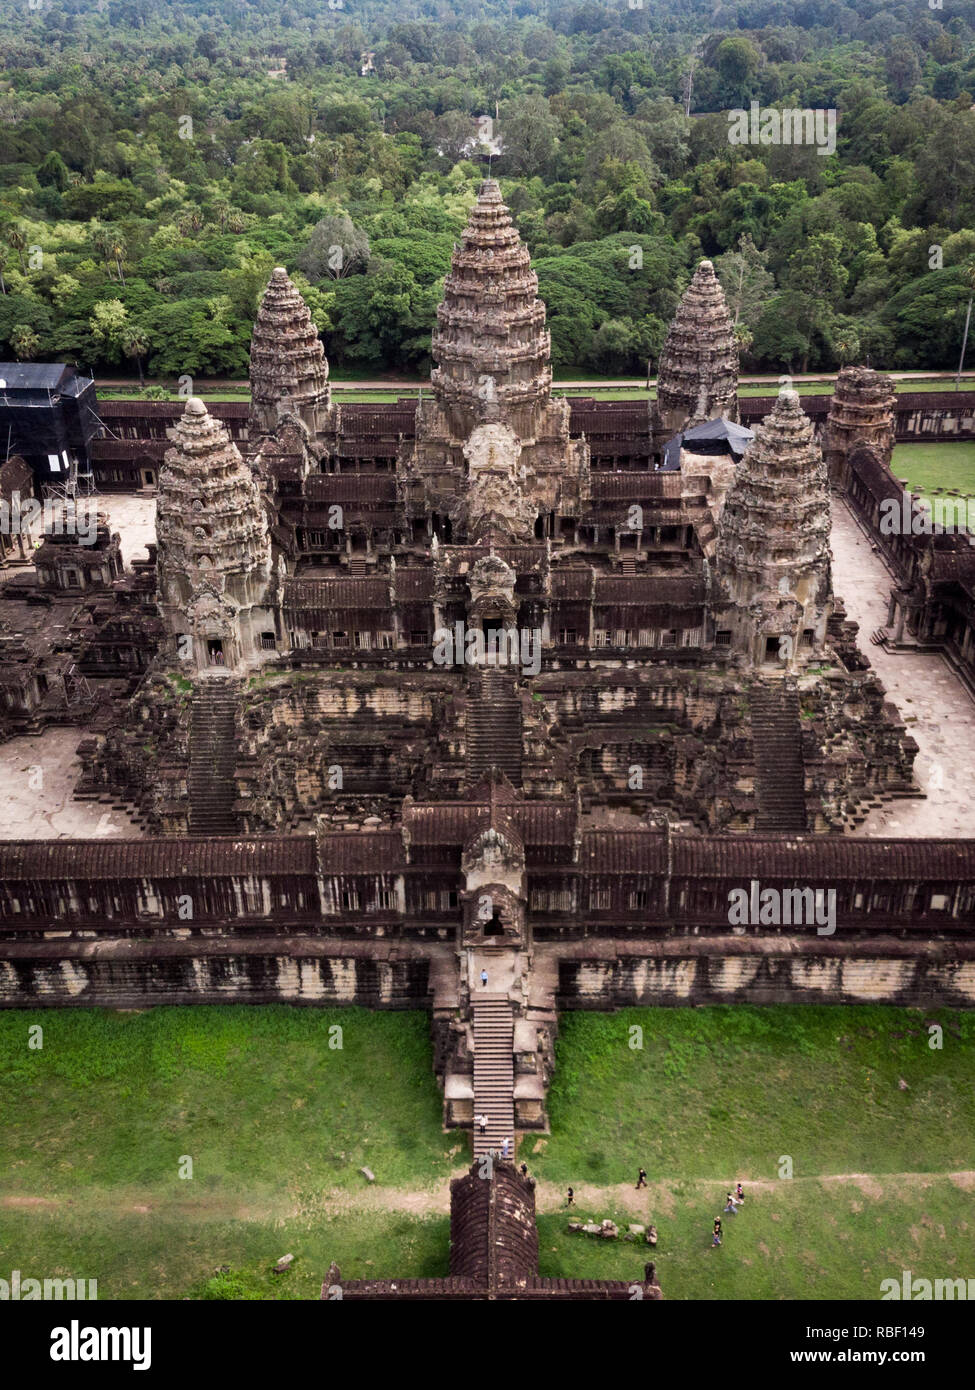 Aerial view of Angkor Wat temple, Siem Reap, Cambodia. - Stock Image